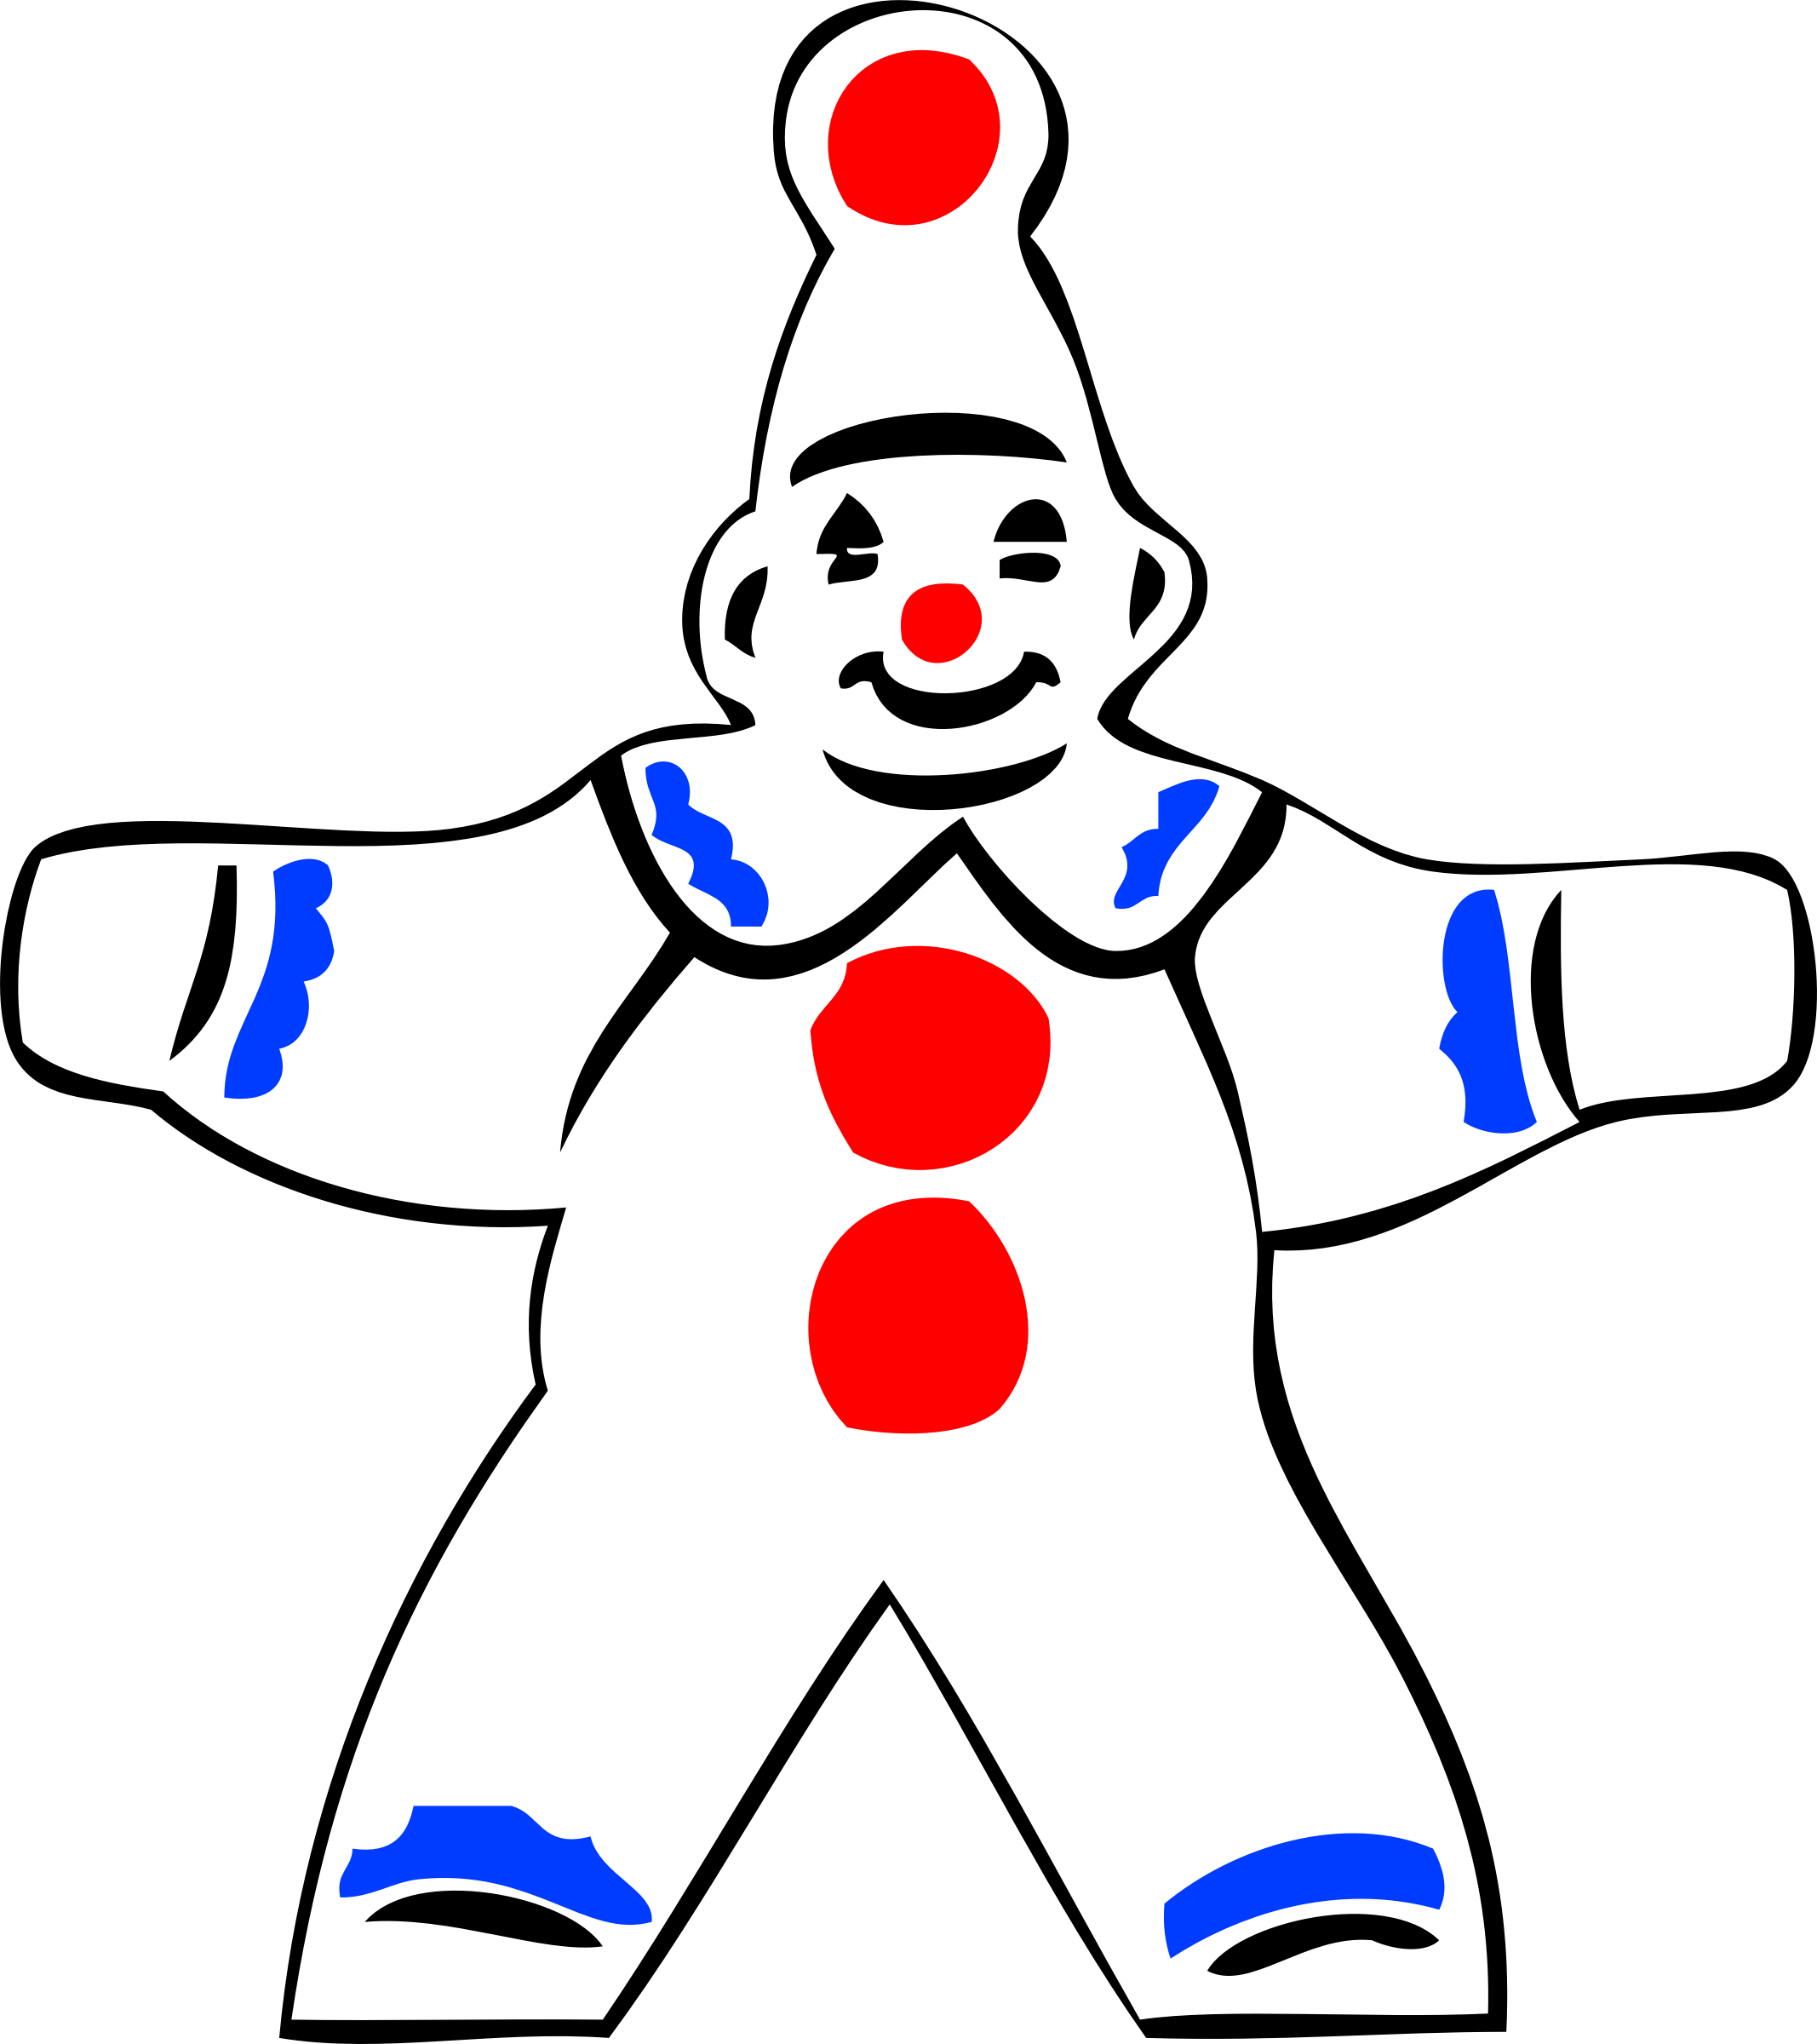 simple clown figure by johnny_automatic